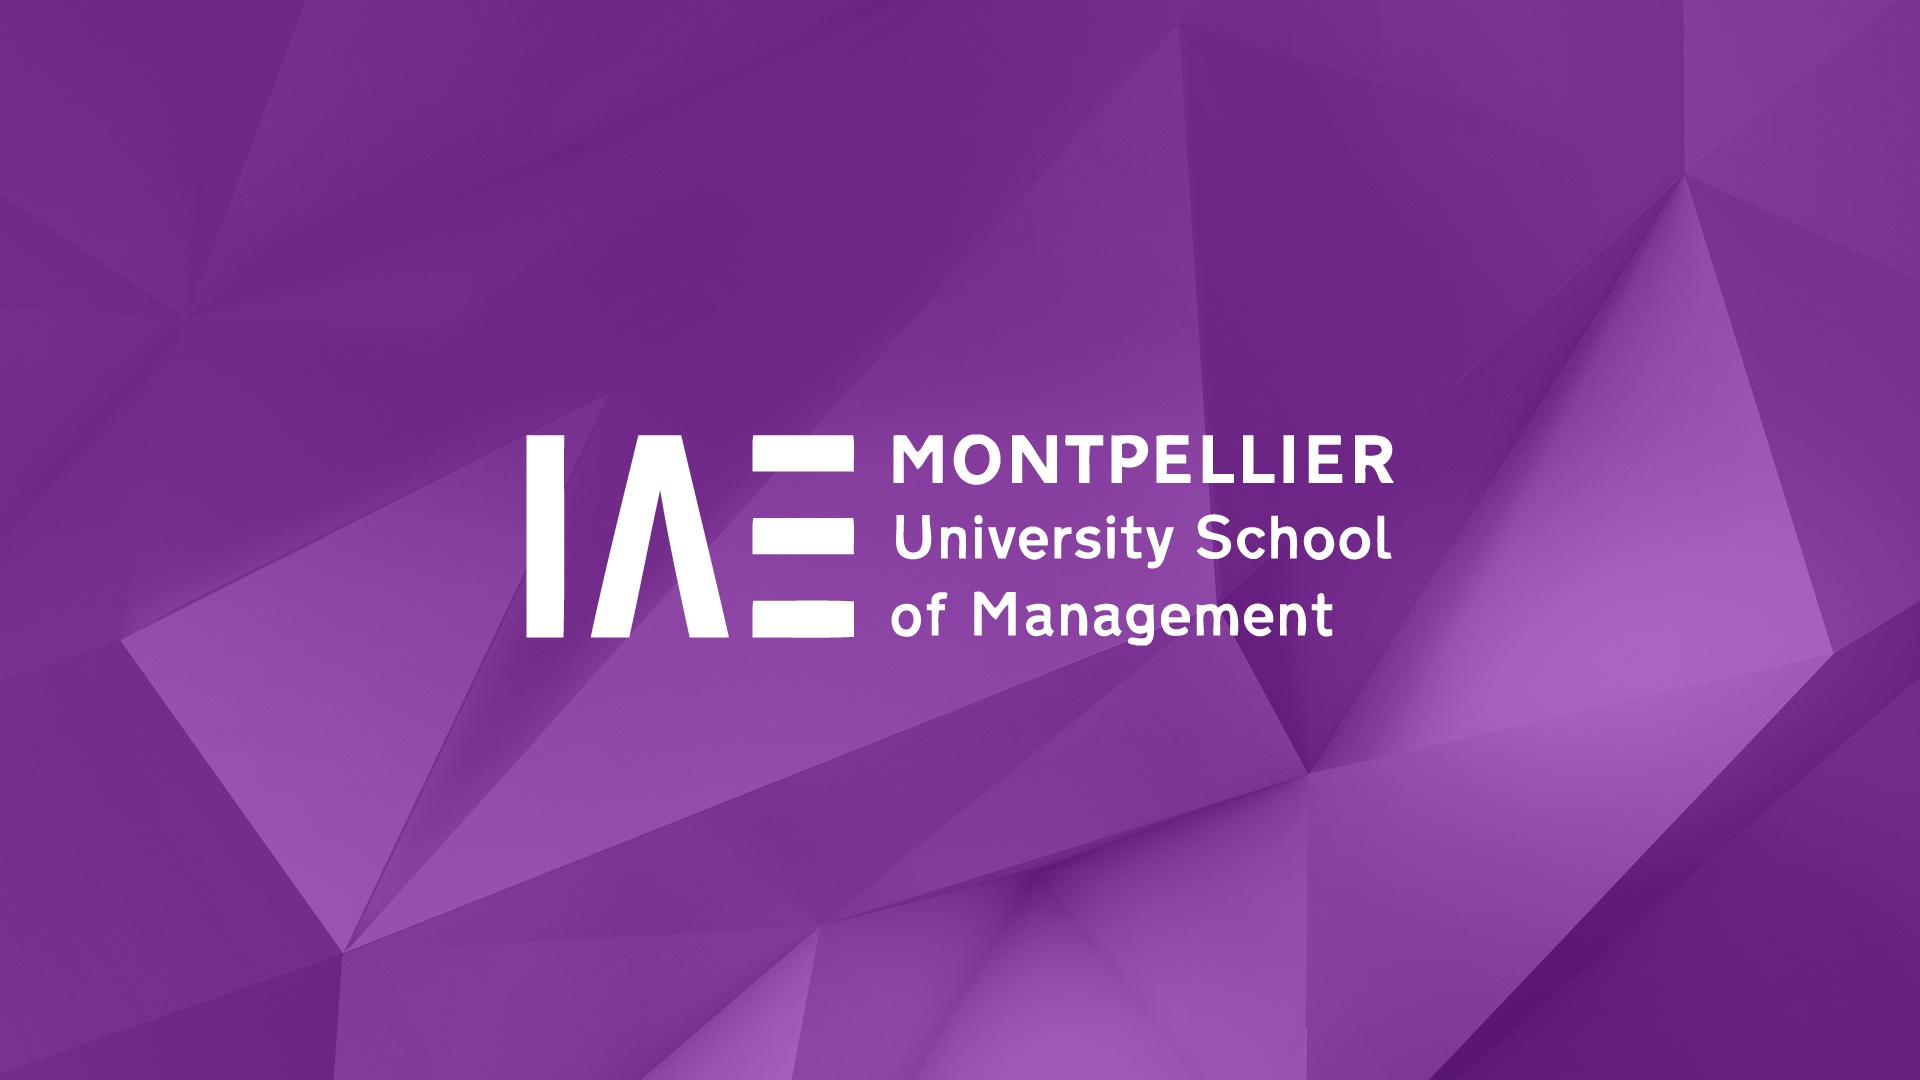 iae-montpellier-creation-plaquette-brochure-fiches-diplomes-communication-caconcept-alexis-cretin-graphiste